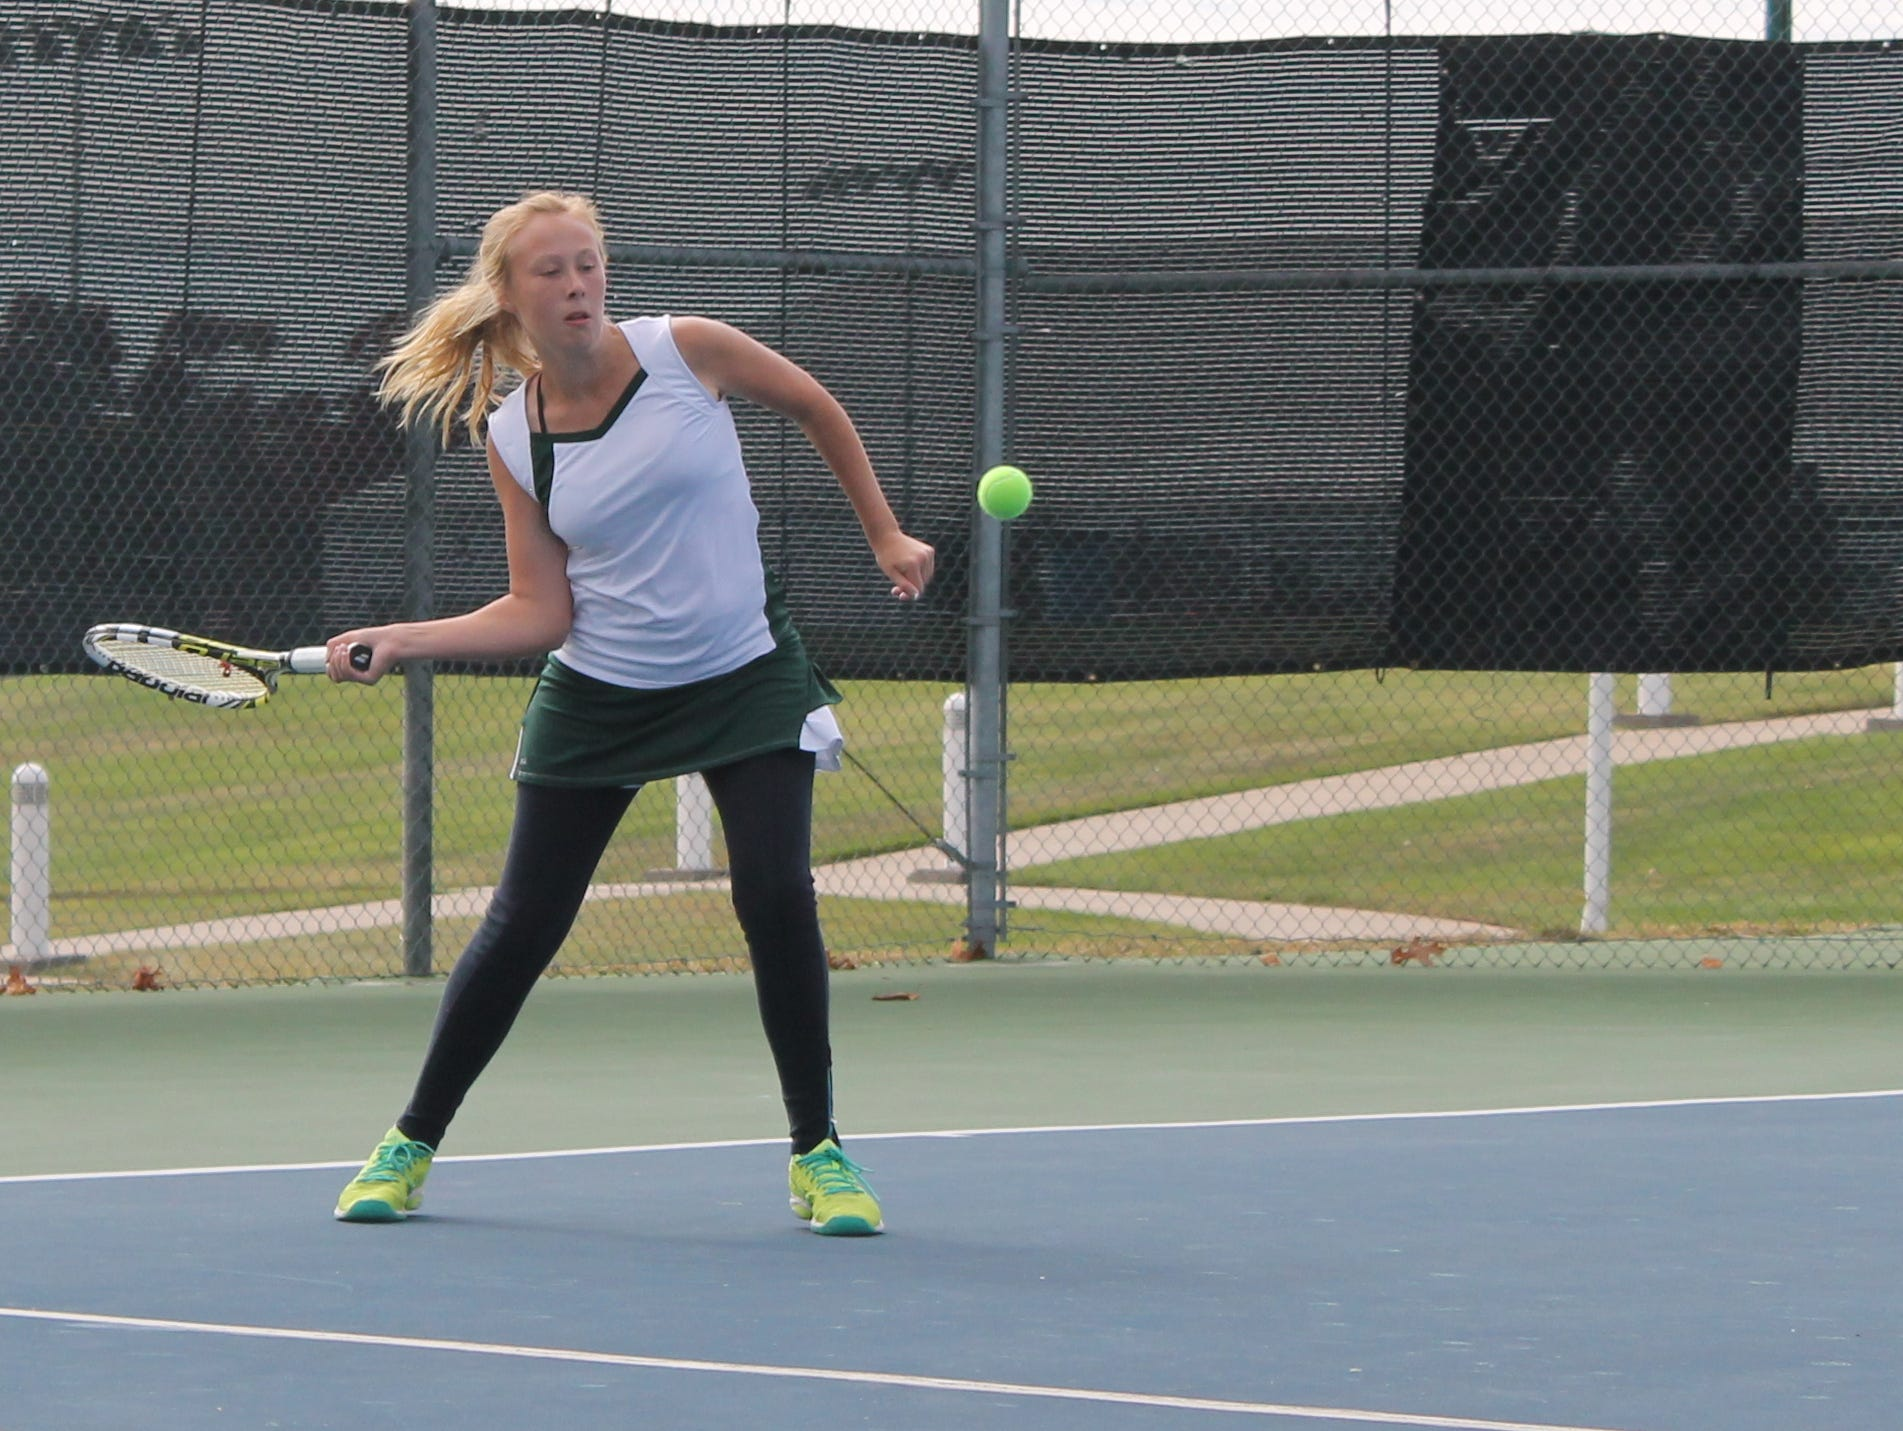 Springfield Catholic junior Emily Kroutil placed fifth in the state in Class 1 singles at Cooper Tennis Complex Oct. 16-17.